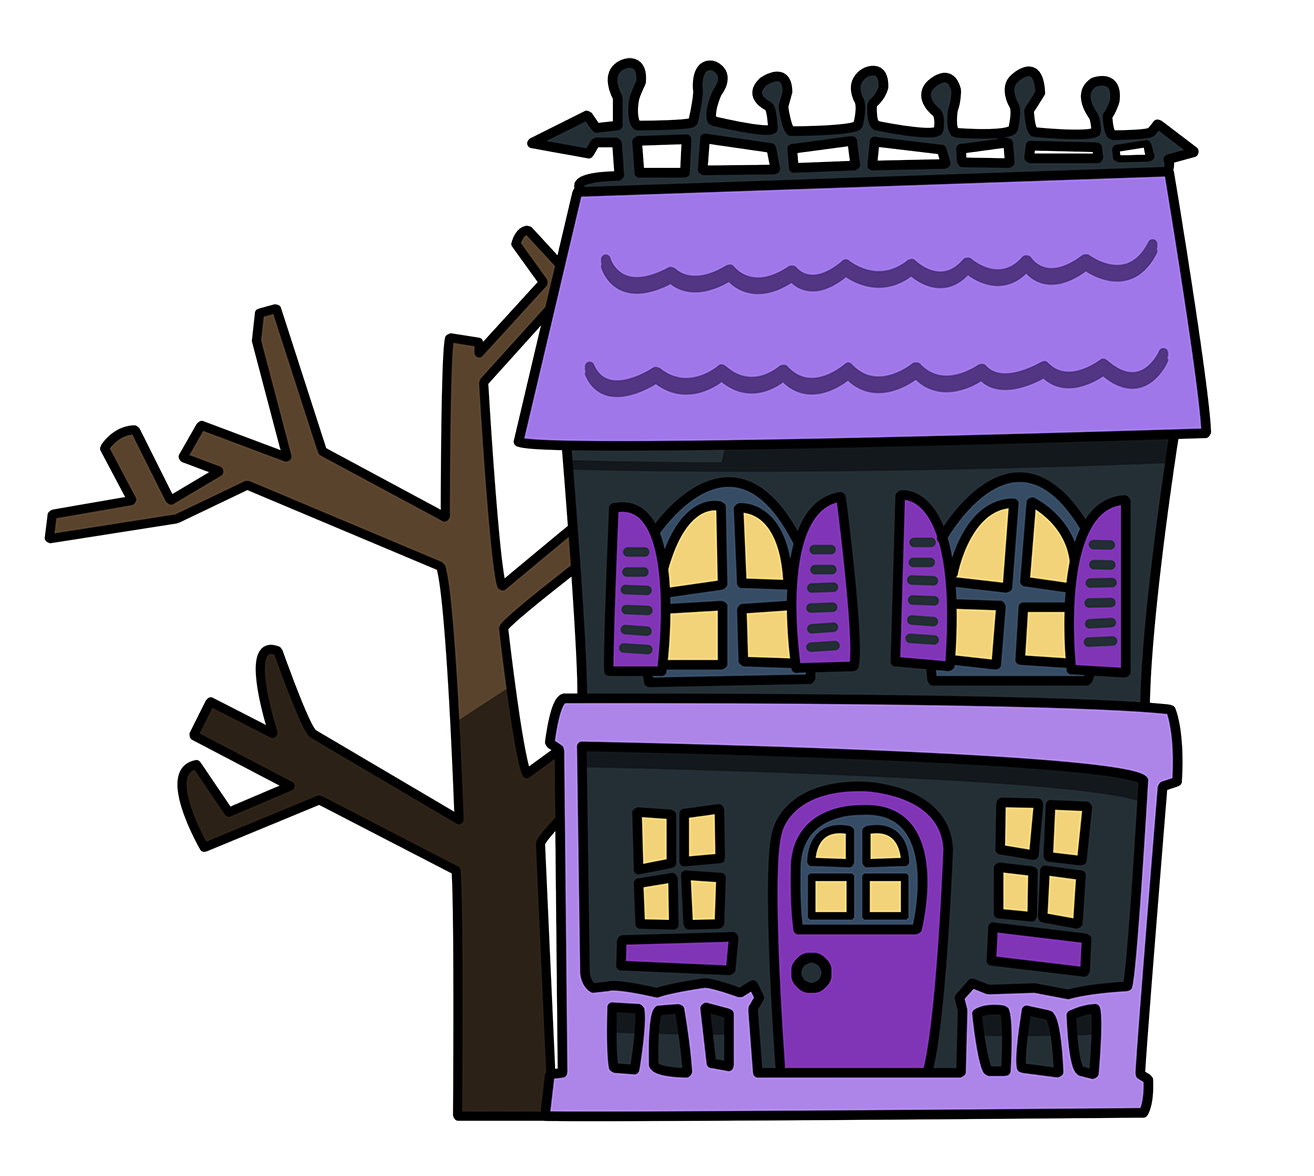 Free images of houses. Tower clipart haunted